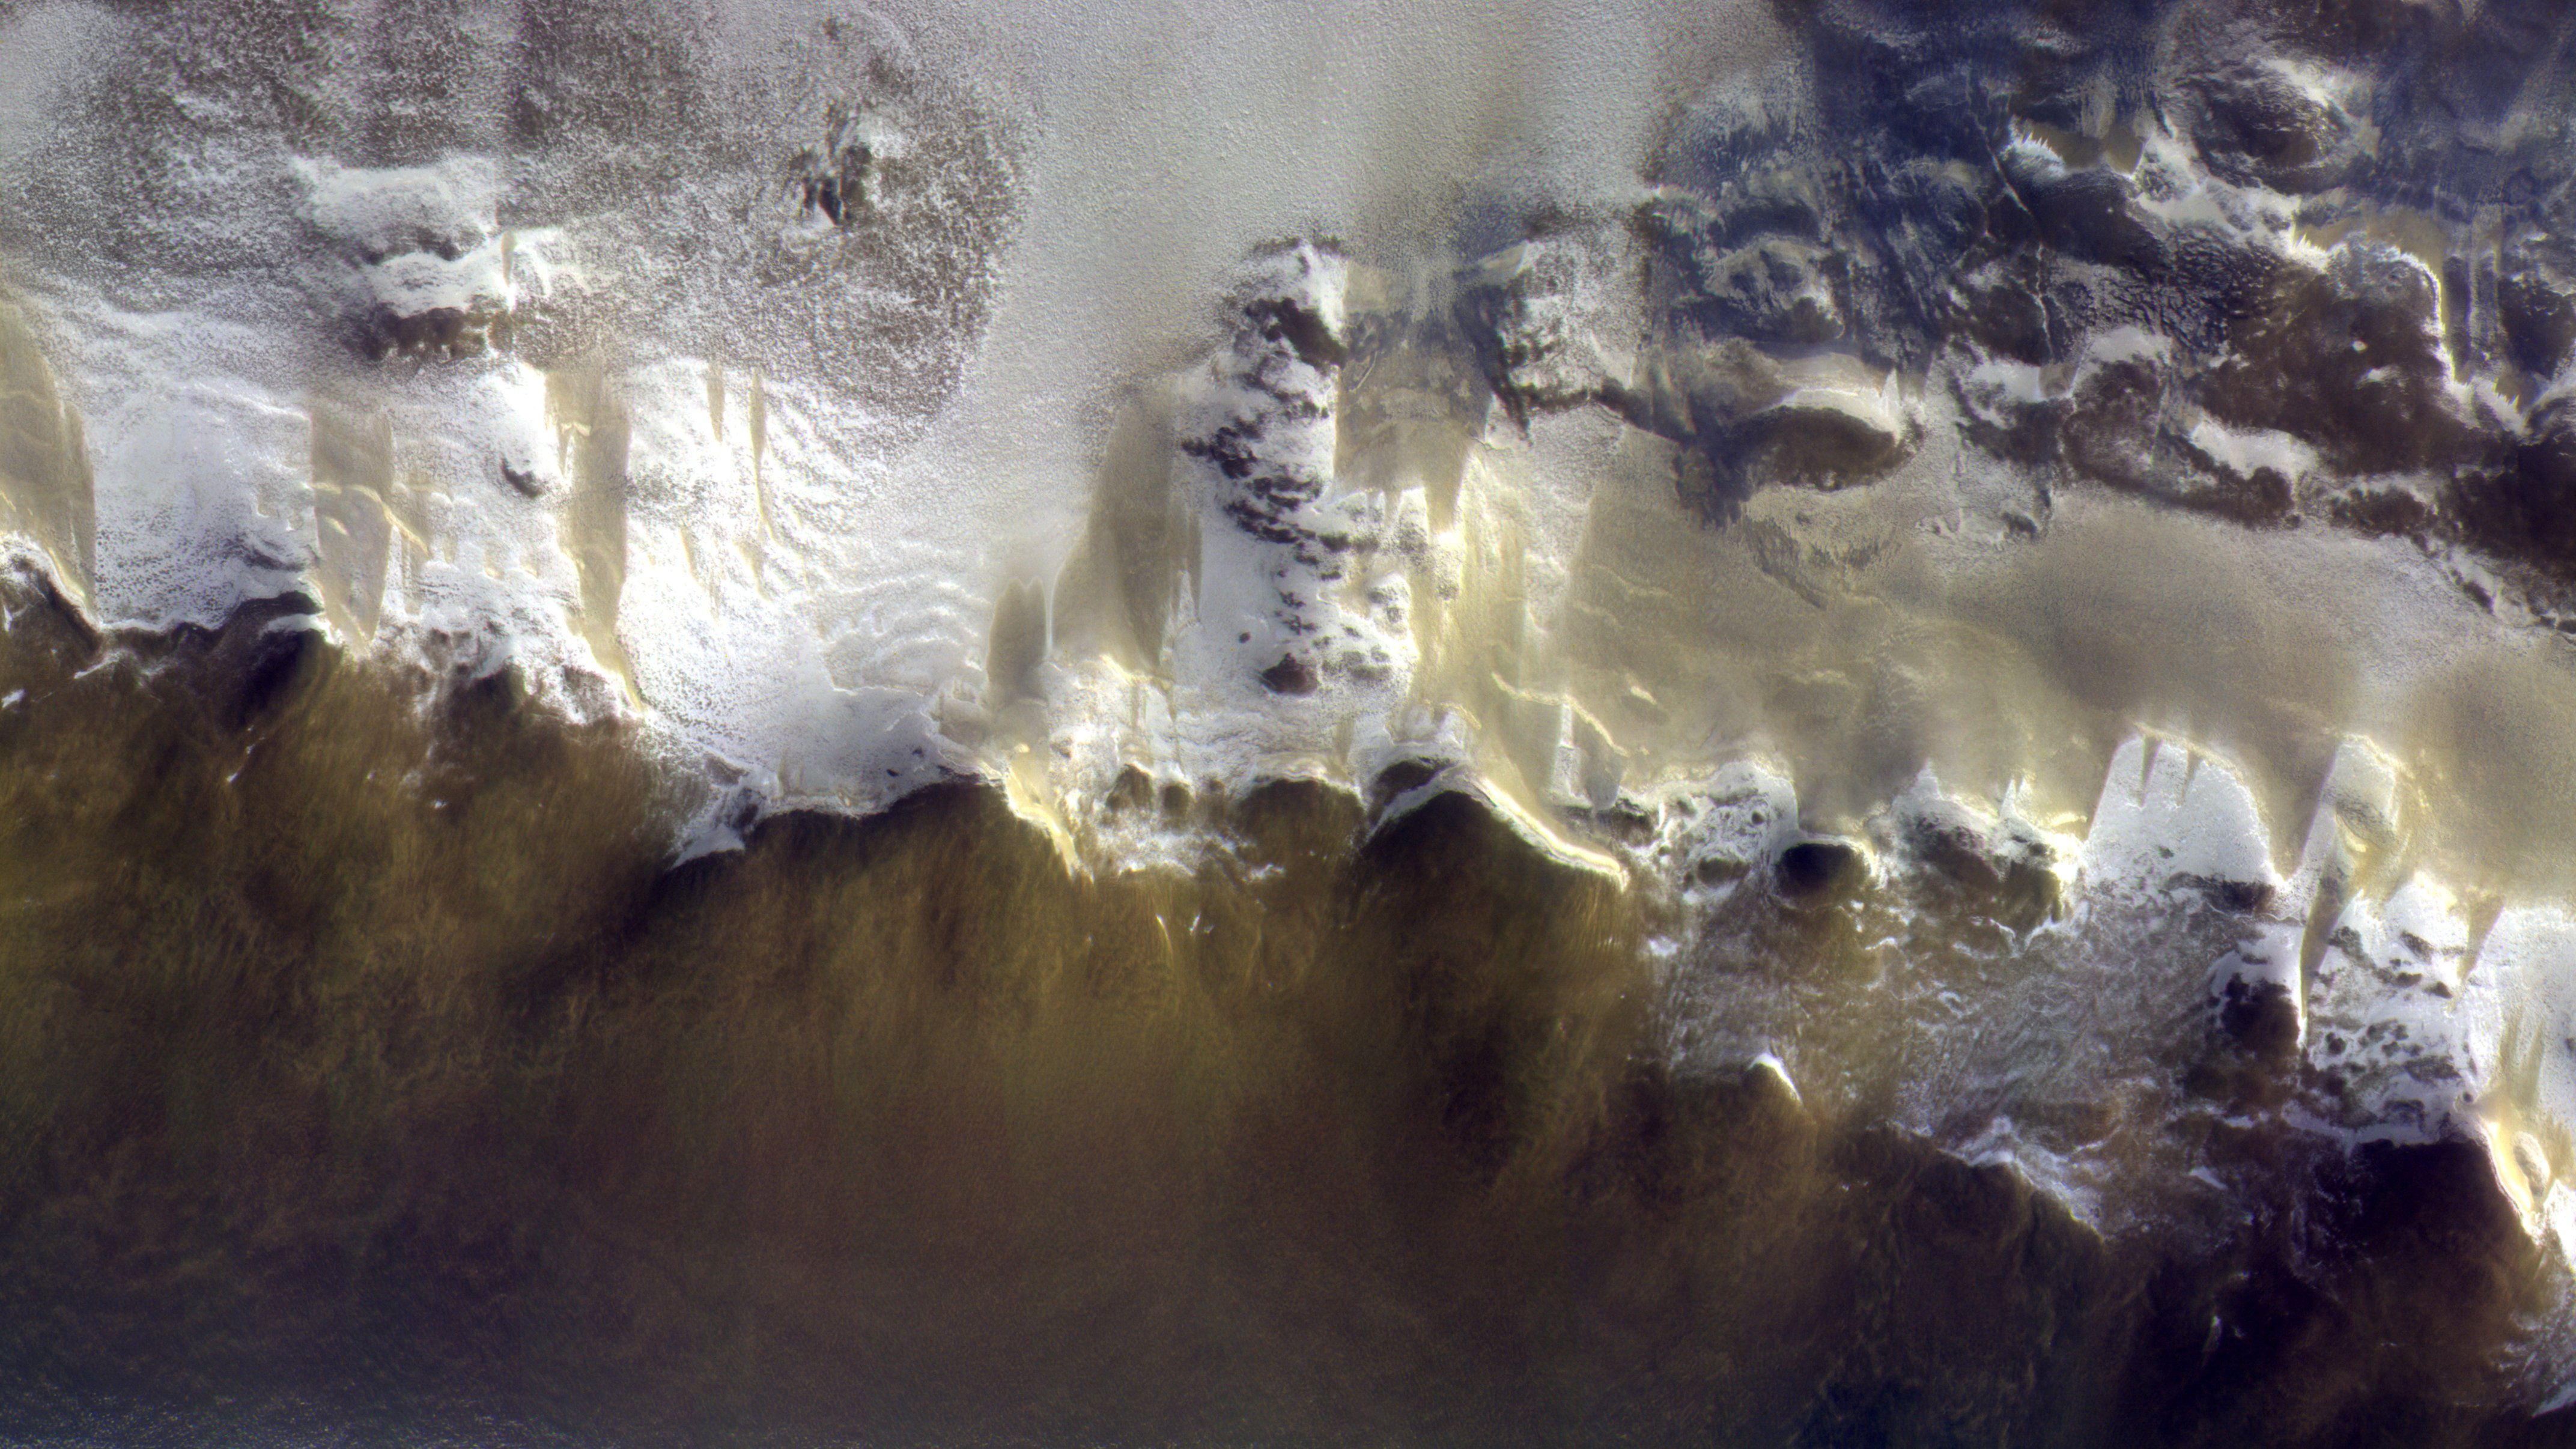 Gorgeous Photo Of Martian Landscape Is Just The Beginning For ExoMars Mission